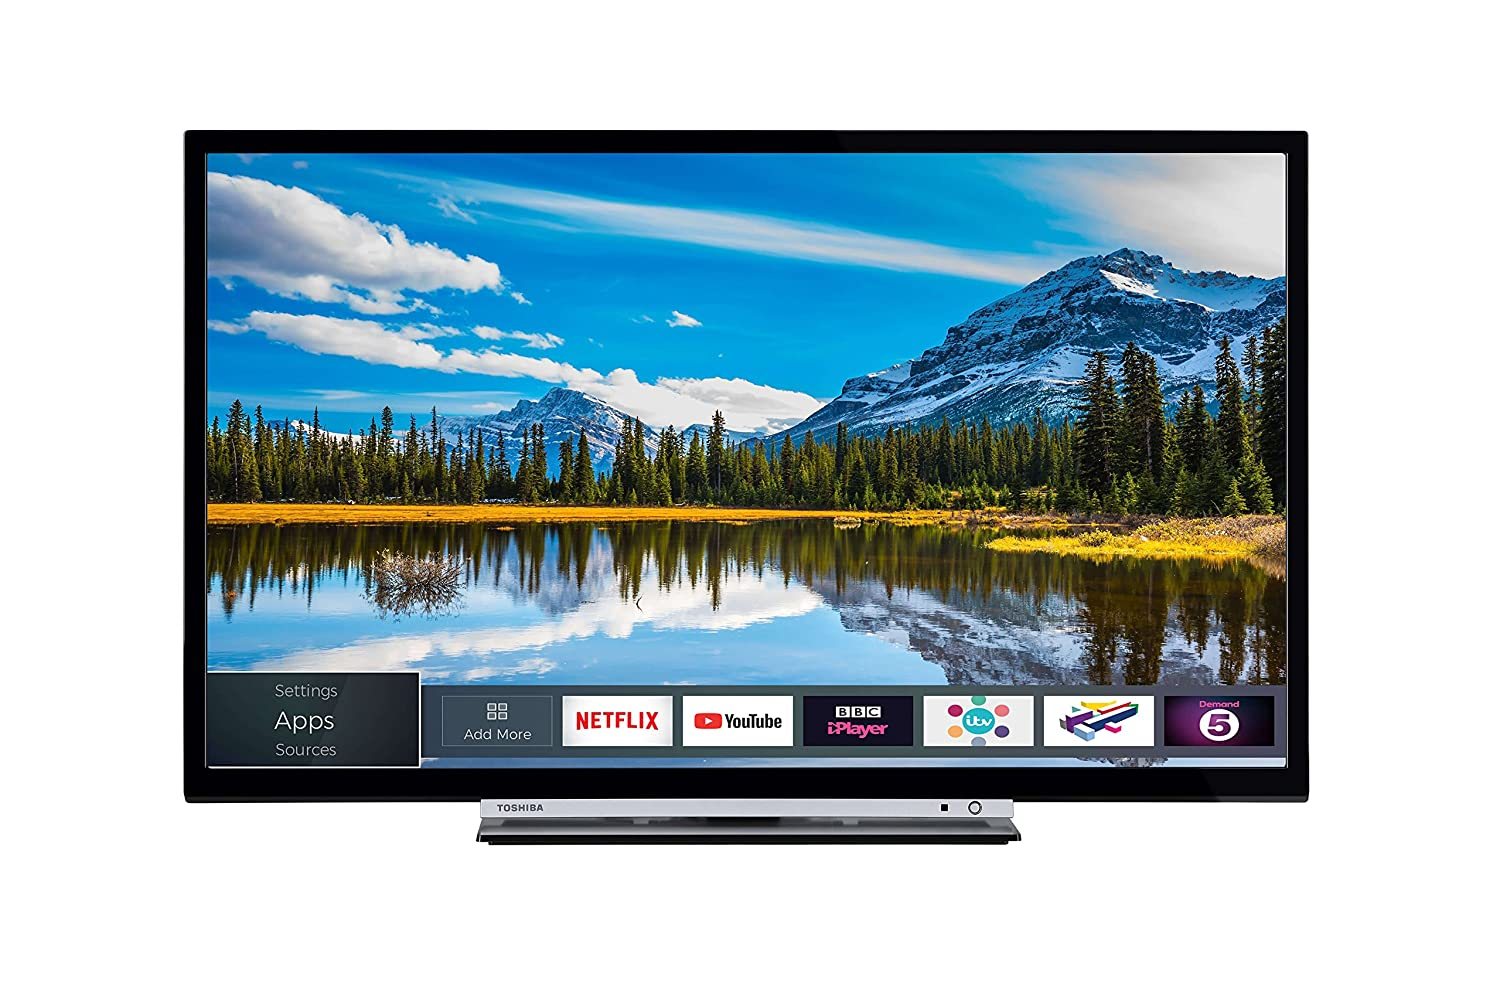 17837e20026 Toshiba 32W3863DB 32-Inch HD Ready Smart TV with Freeview Play -  Black Silver (2018 Model)  Amazon.co.uk  TV